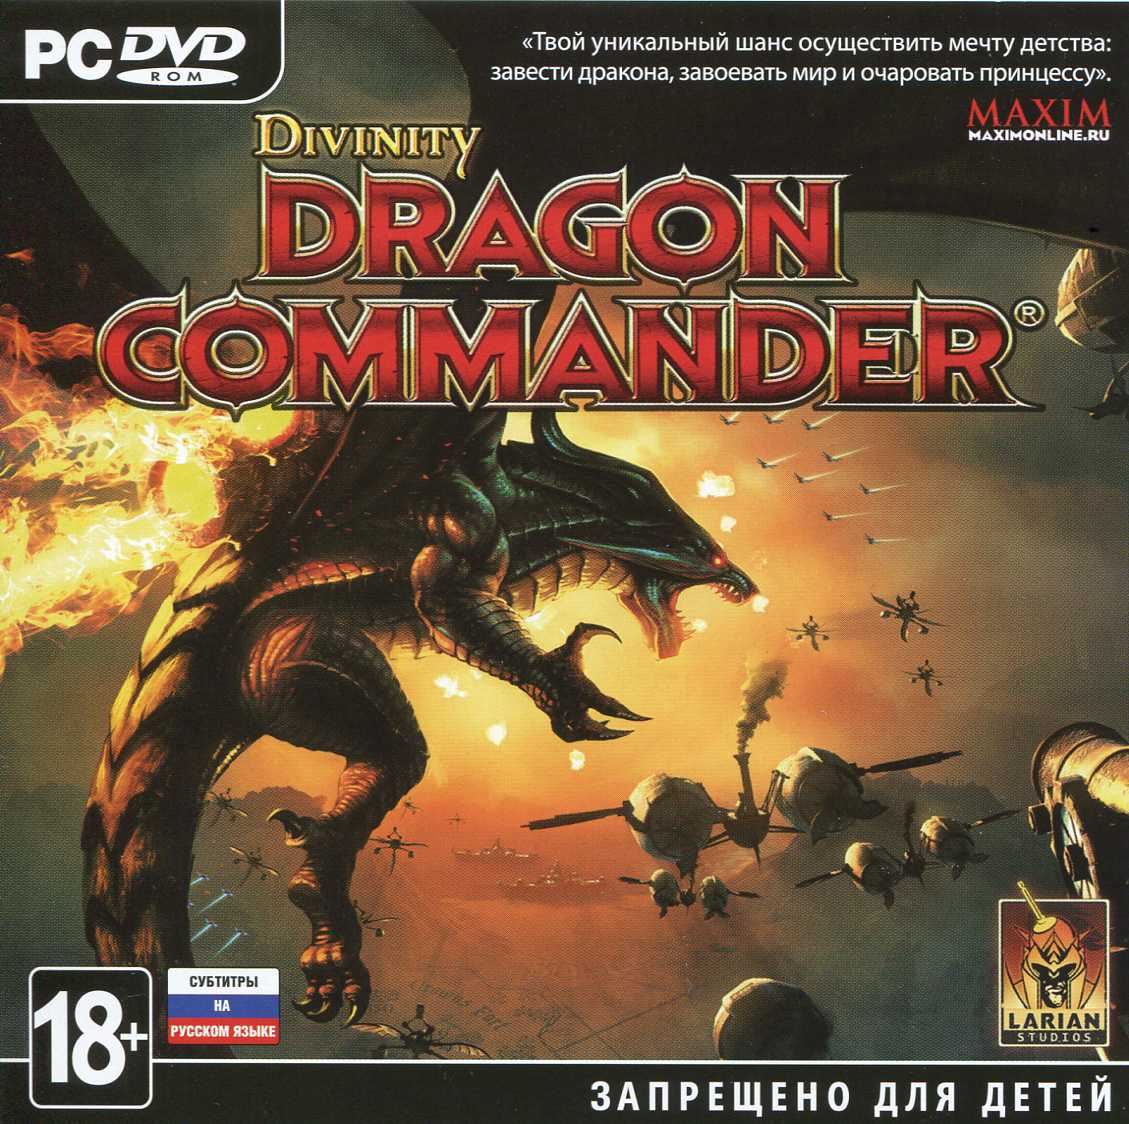 Divinity: Dragon Commander (activation key in Steam)